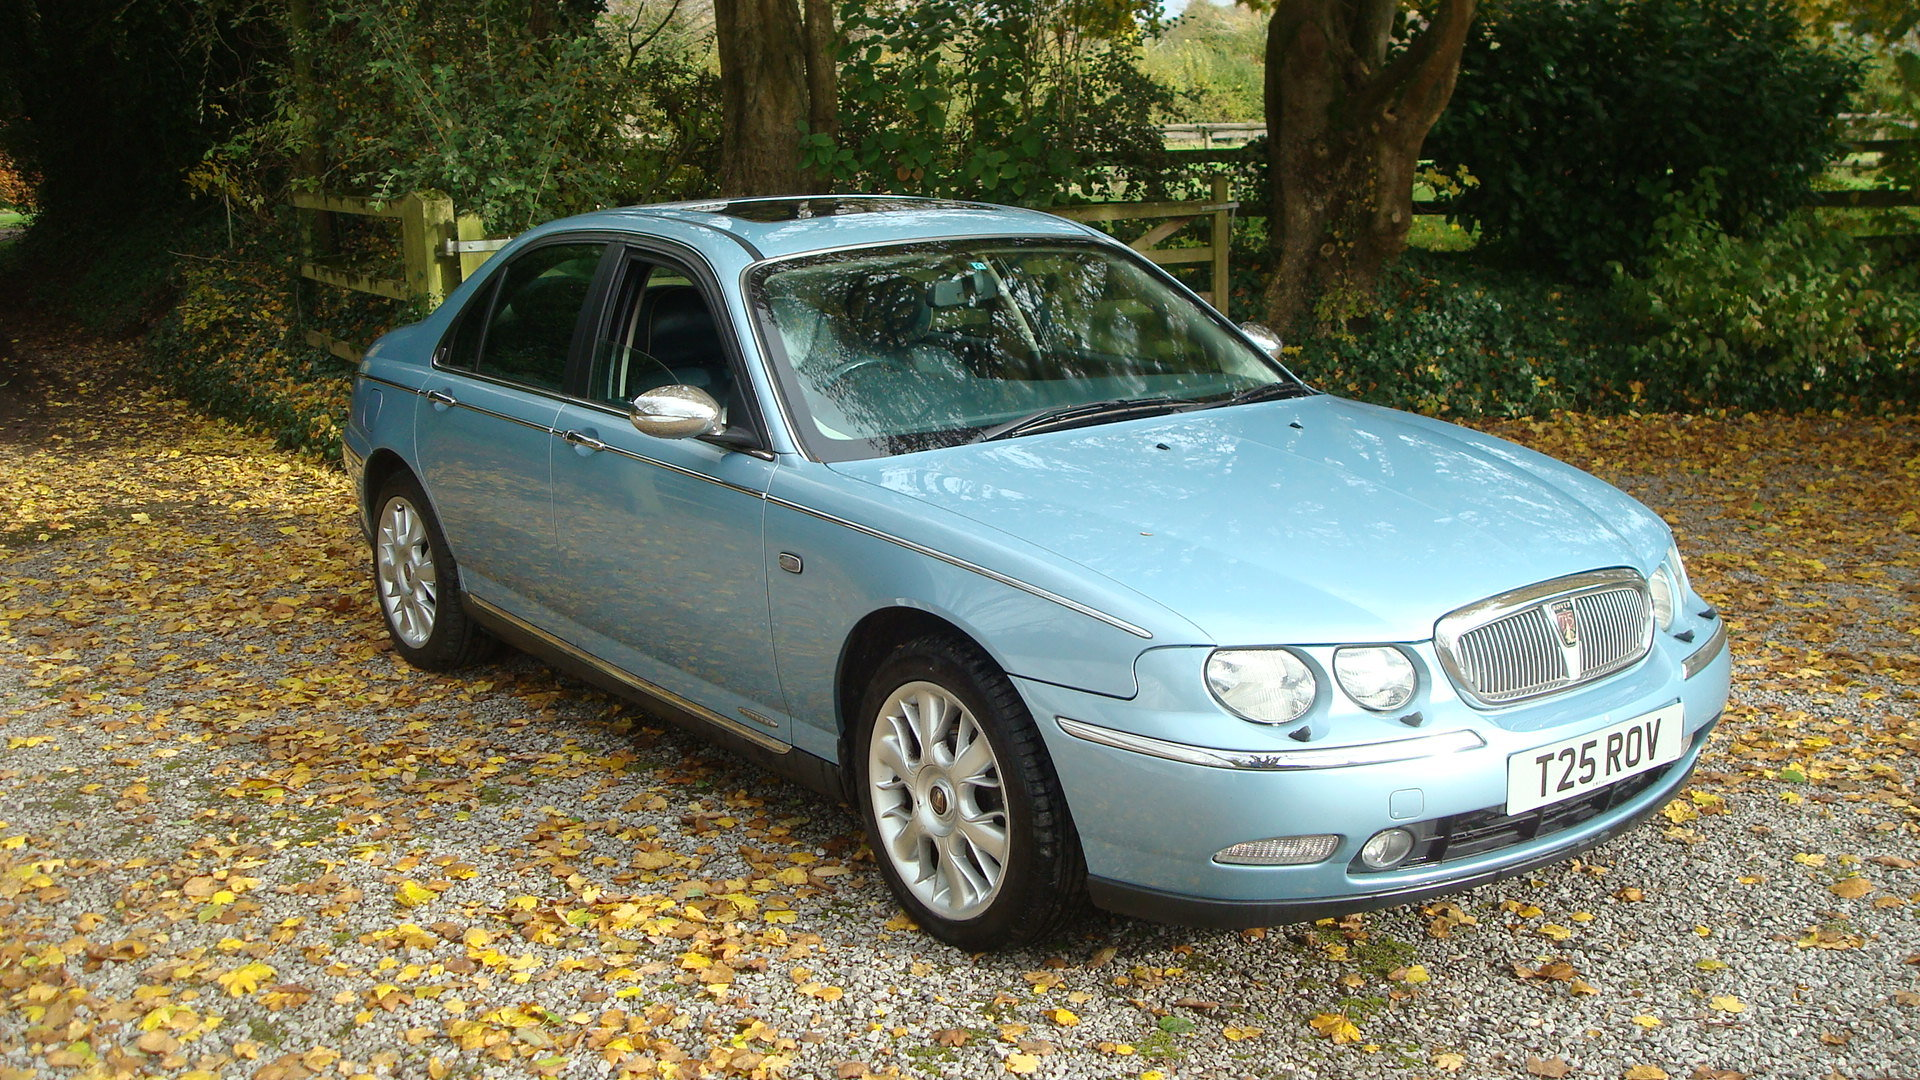 1999 Rover 75 2.5 V6 Connoisseur SE For Sale (picture 1 of 6)